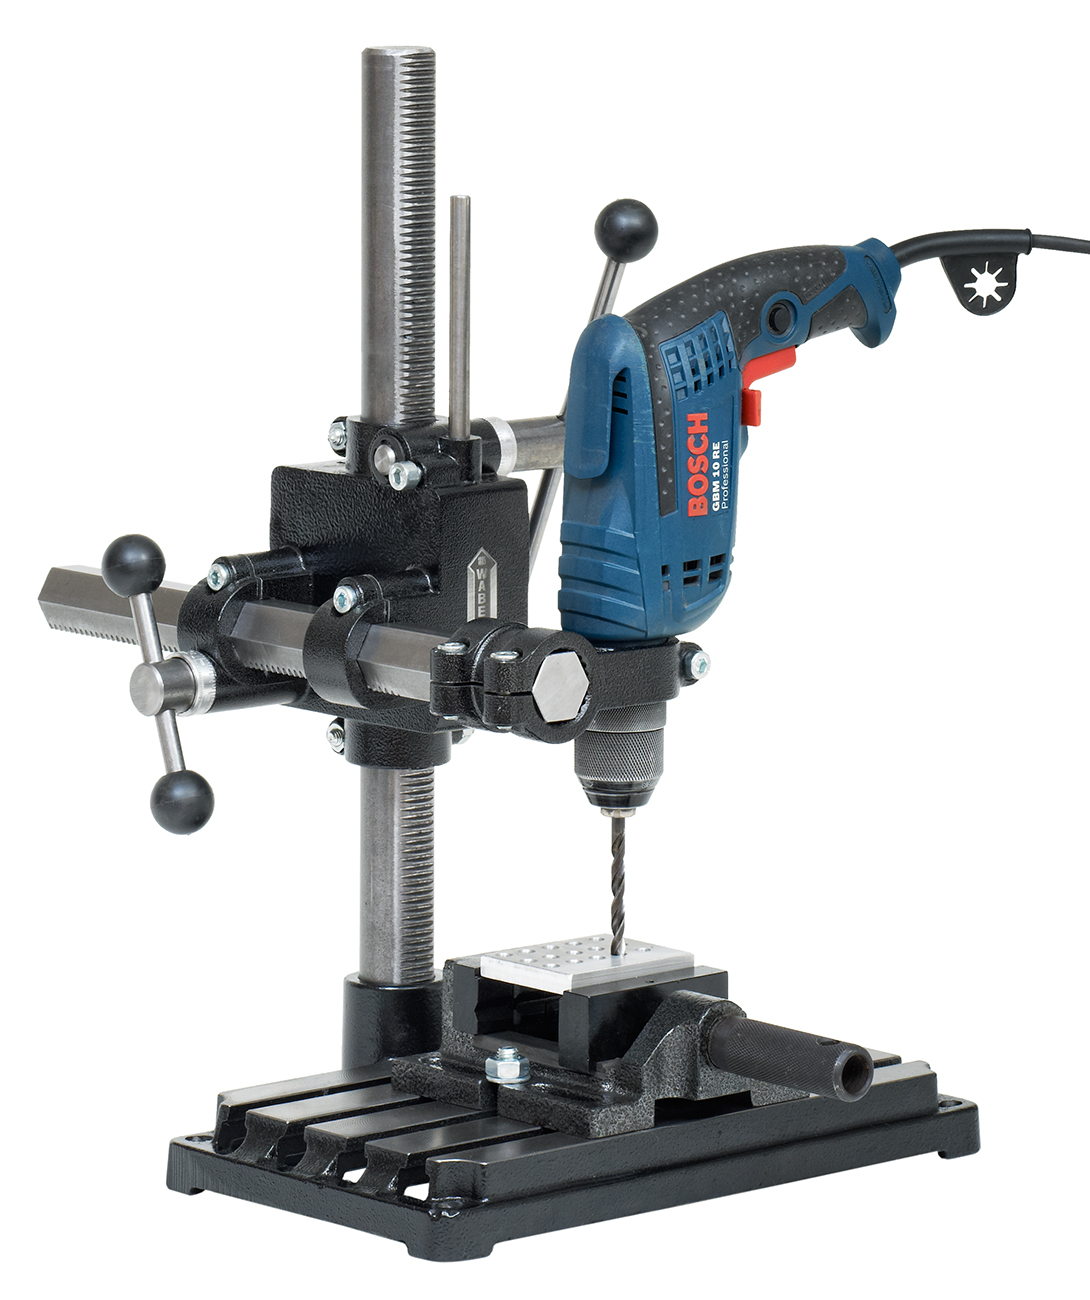 would a dremel workstation be a good alternative for a. Black Bedroom Furniture Sets. Home Design Ideas